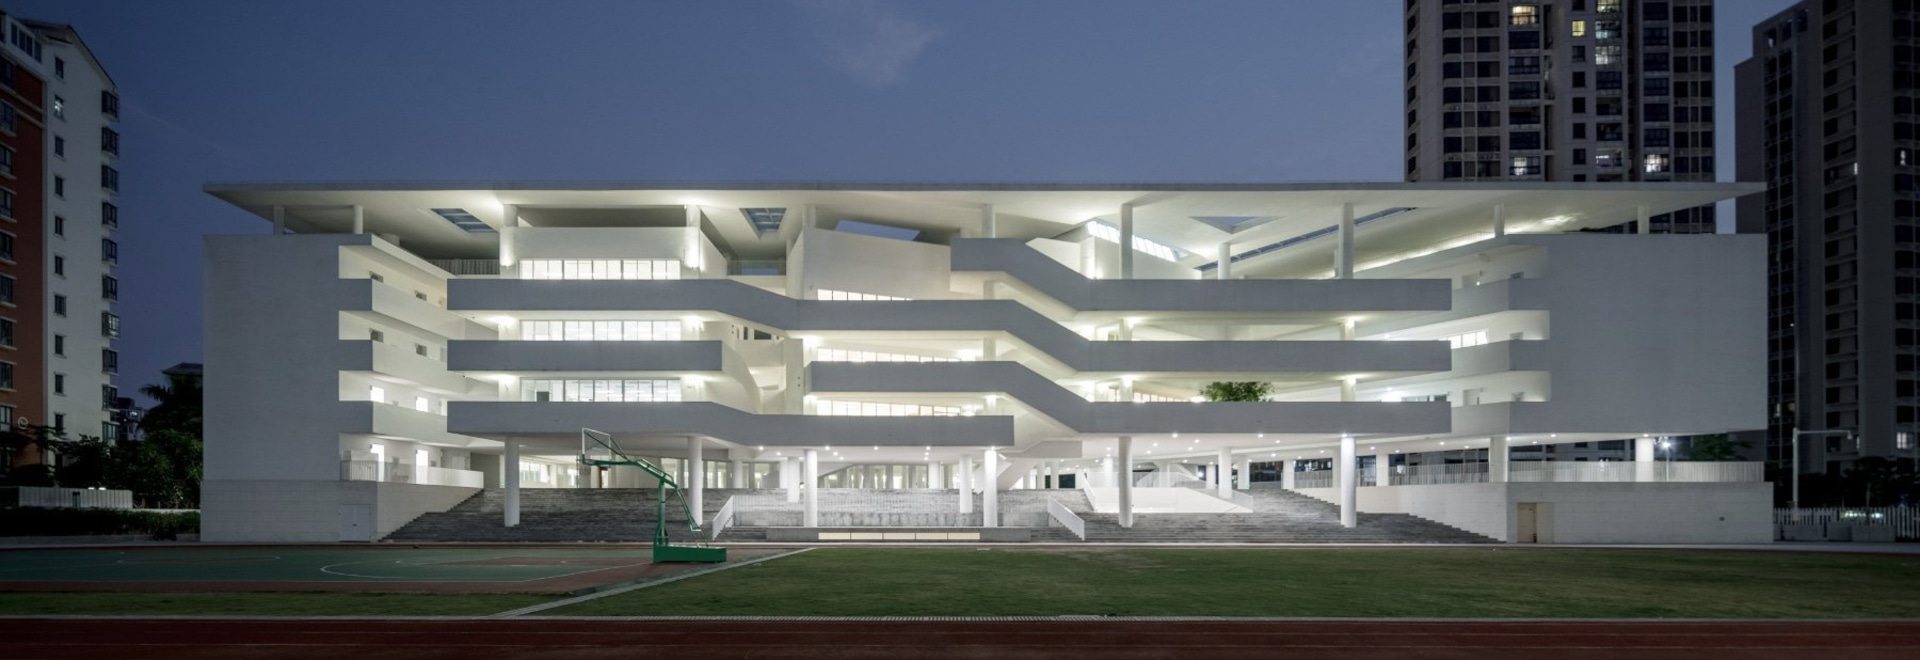 TAO configures introverted school in china to celebrate creativity and interaction